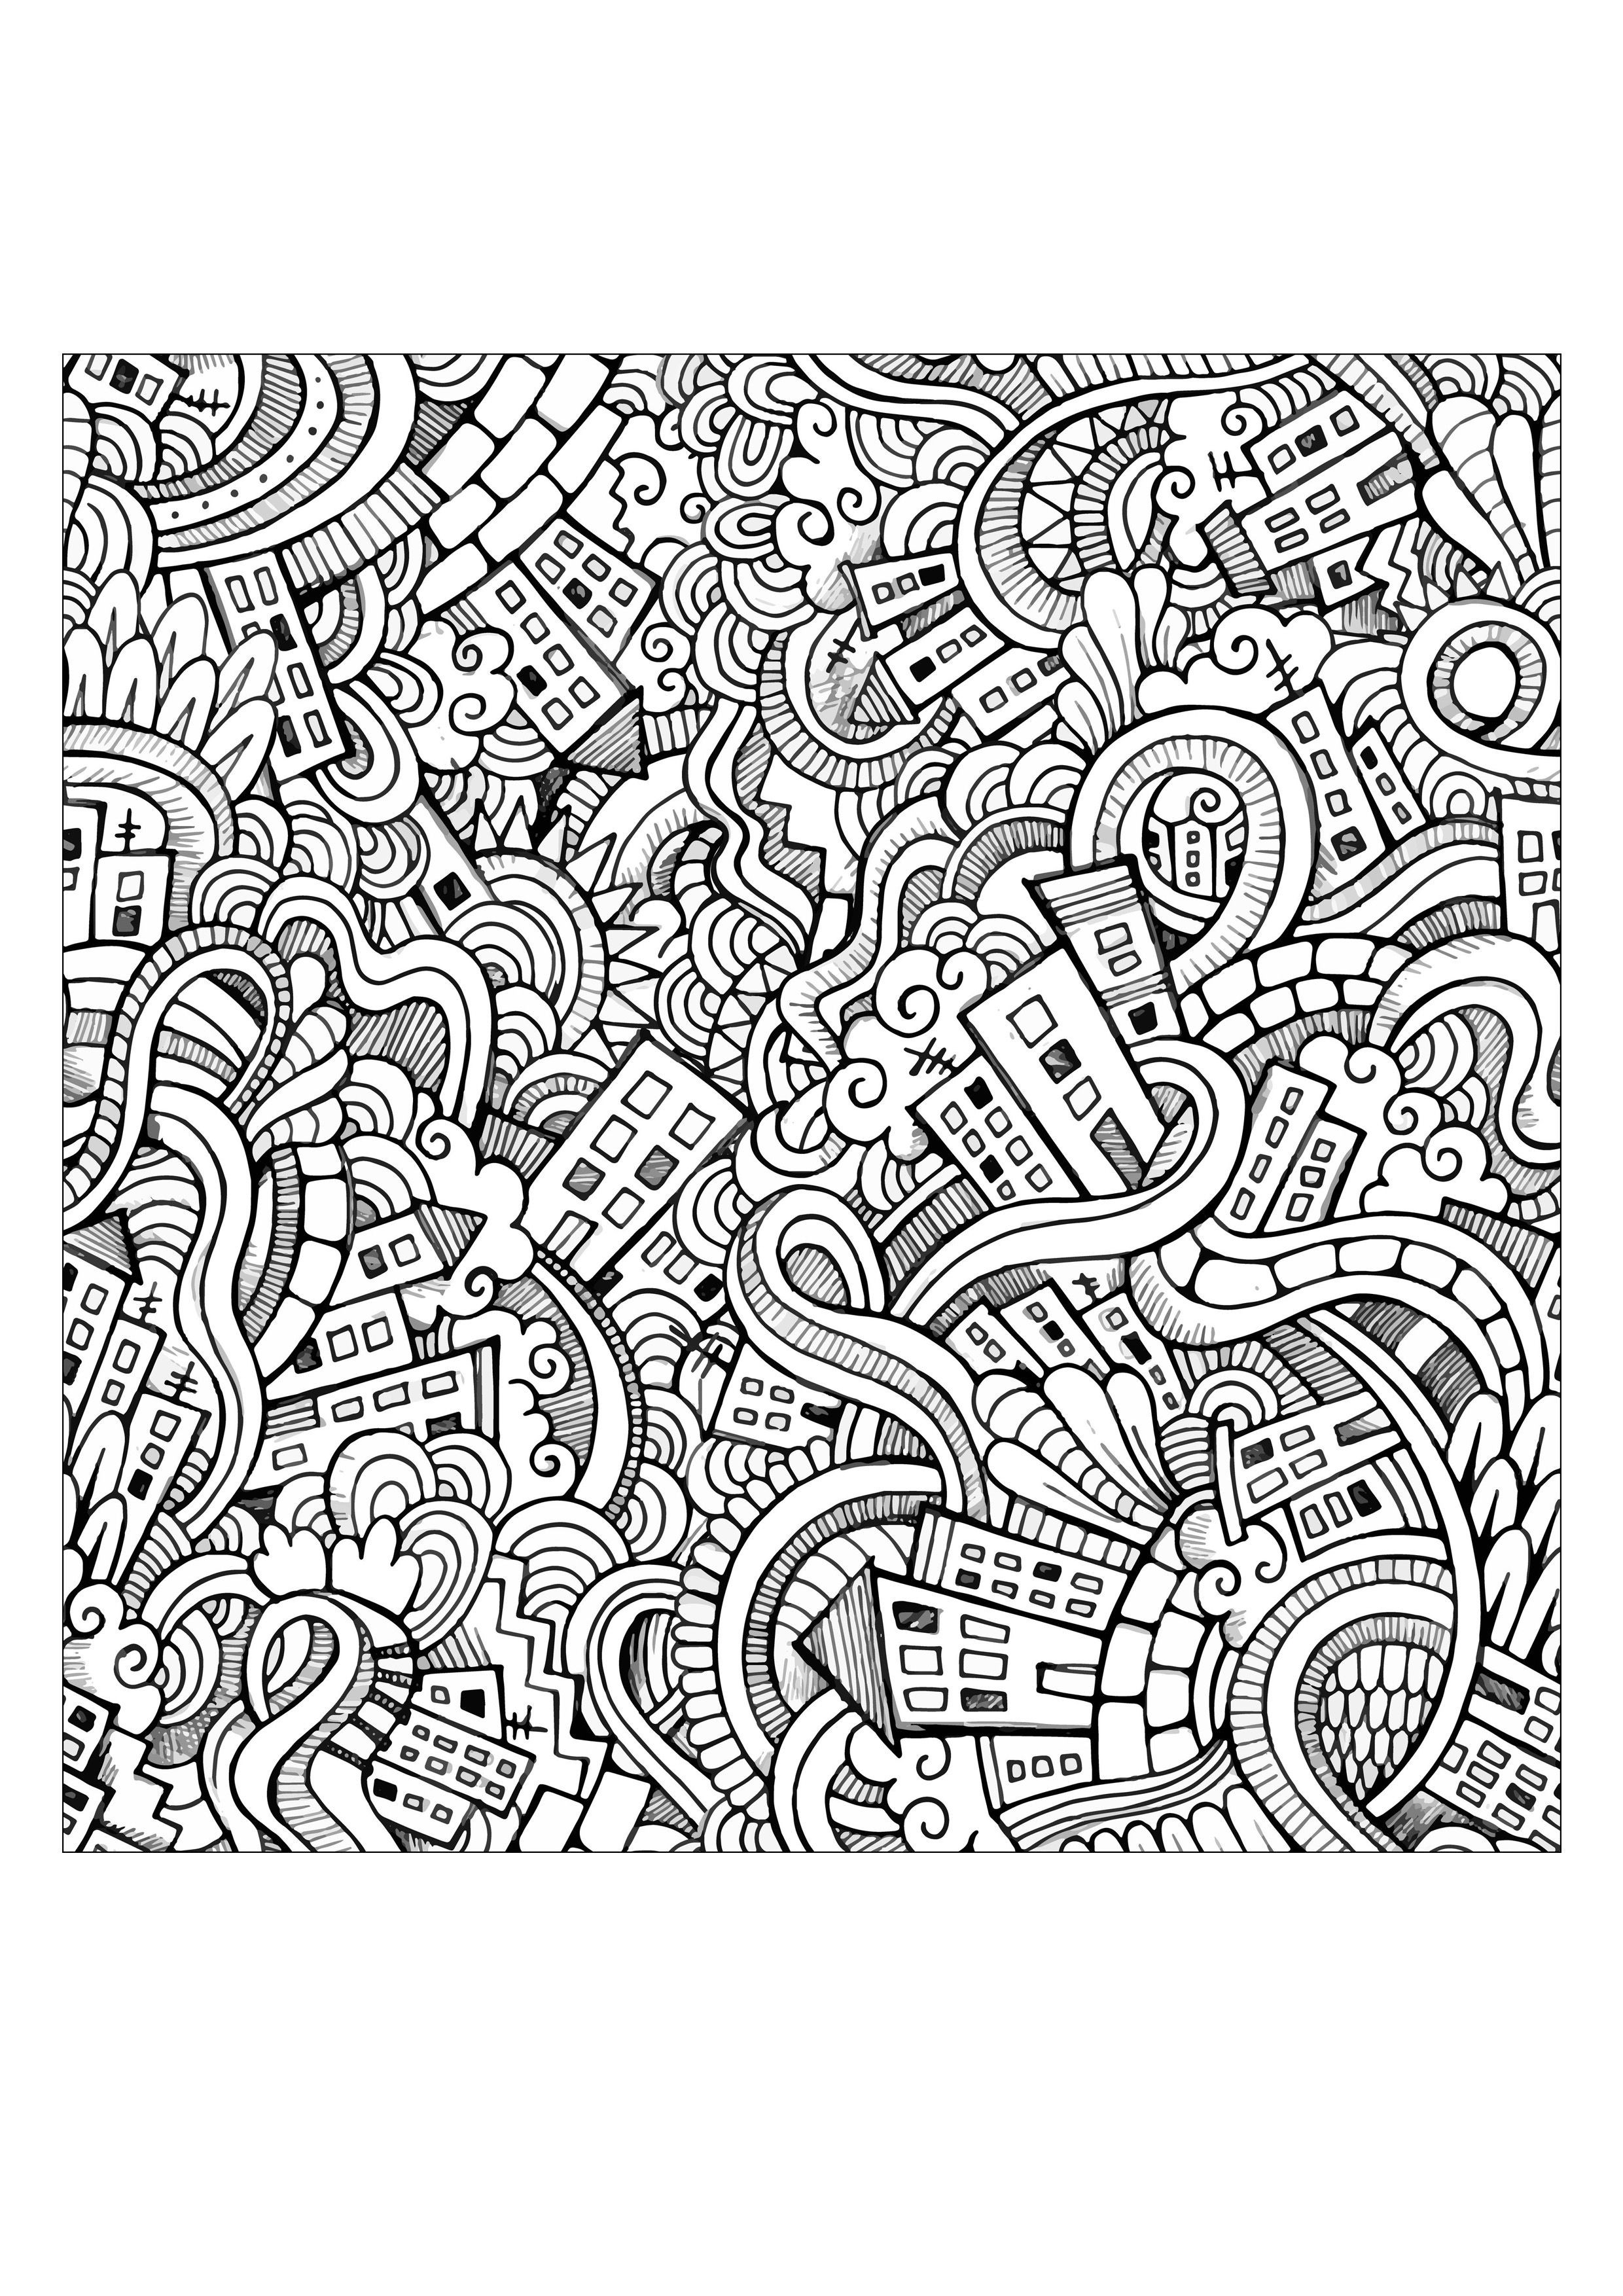 Doodle Art Coloring Pages Free Printable Doodle Art Coloring Pages For Adults Simple Weird